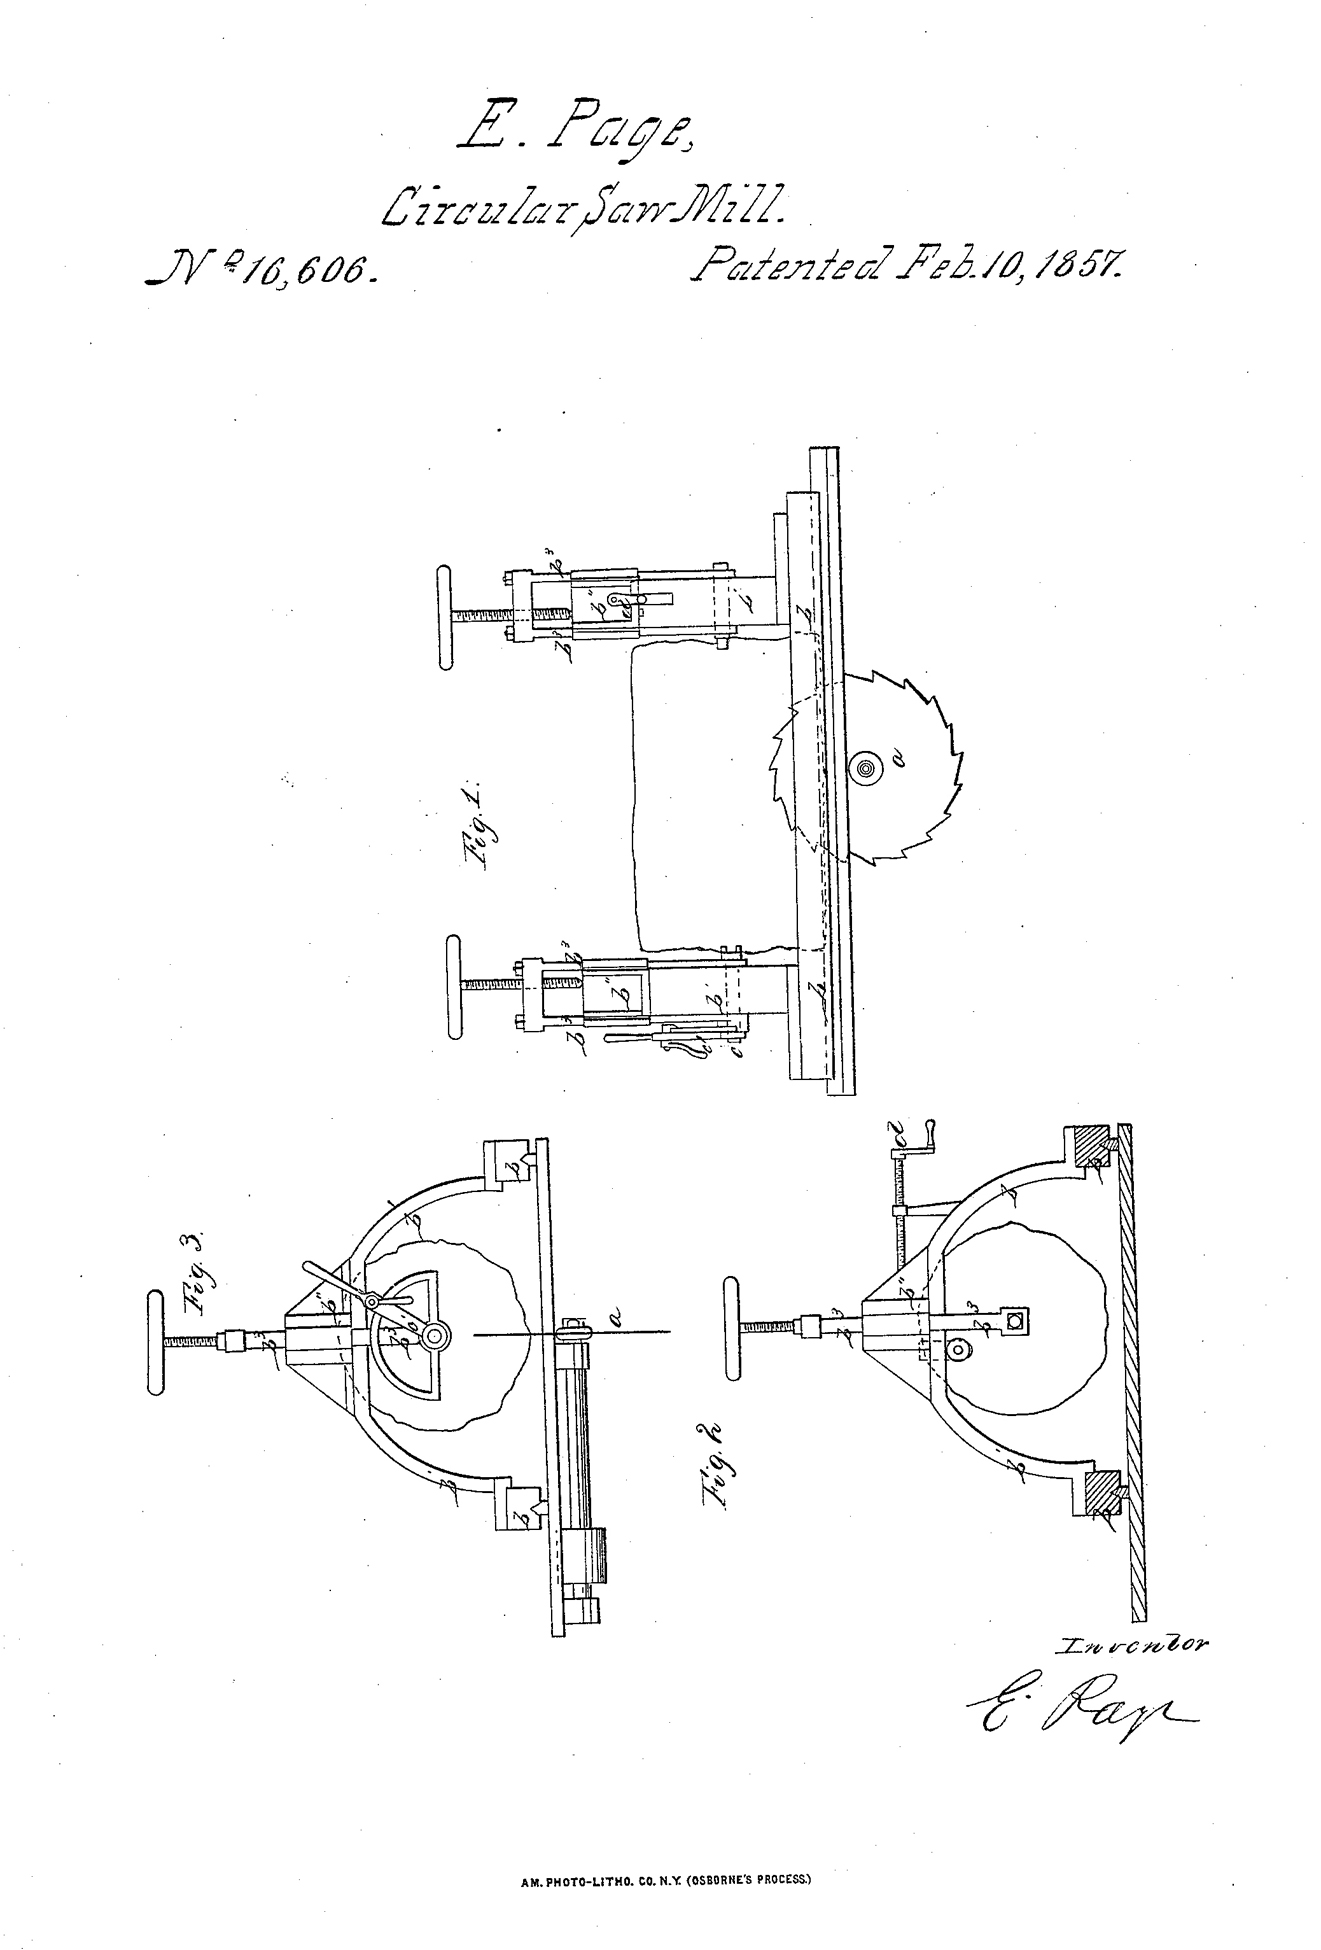 1857-02-10 E. Page, Circular Saw Mill, Patent No. 16,606, page 1